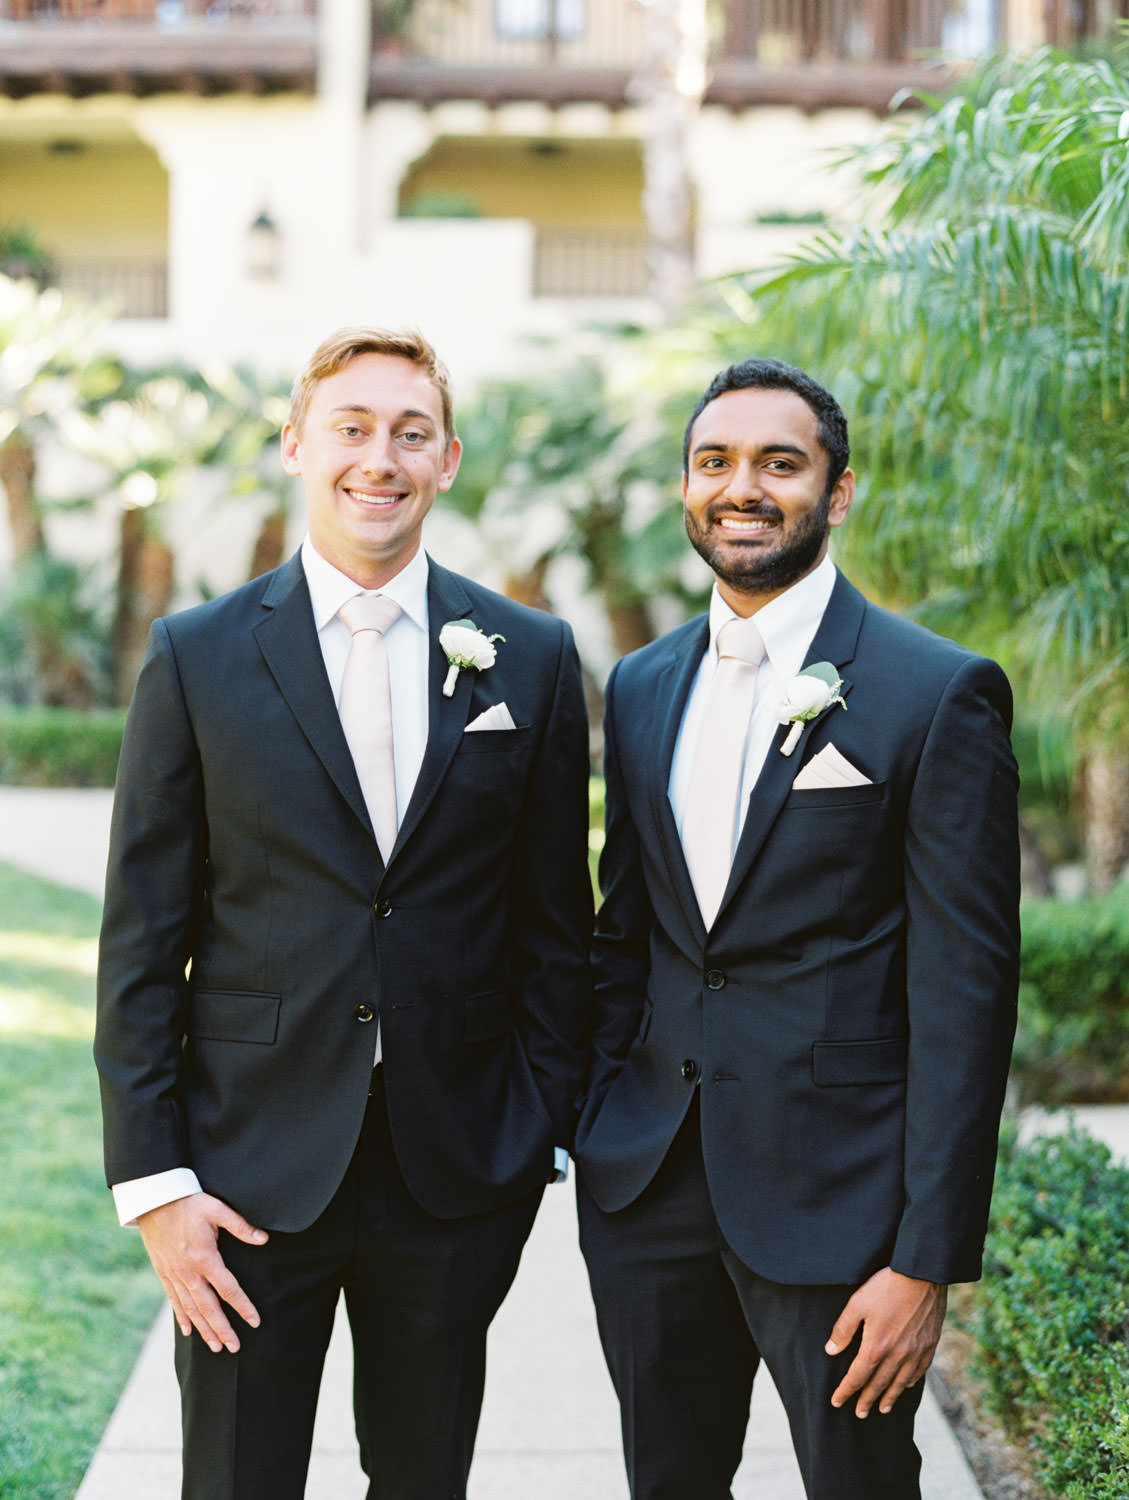 Groom and groomsmen in black suits and blush ties with eucalyptus and rose boutonnieres. Estancia La Jolla wedding shot on film by Cavin Elizabeth Photography